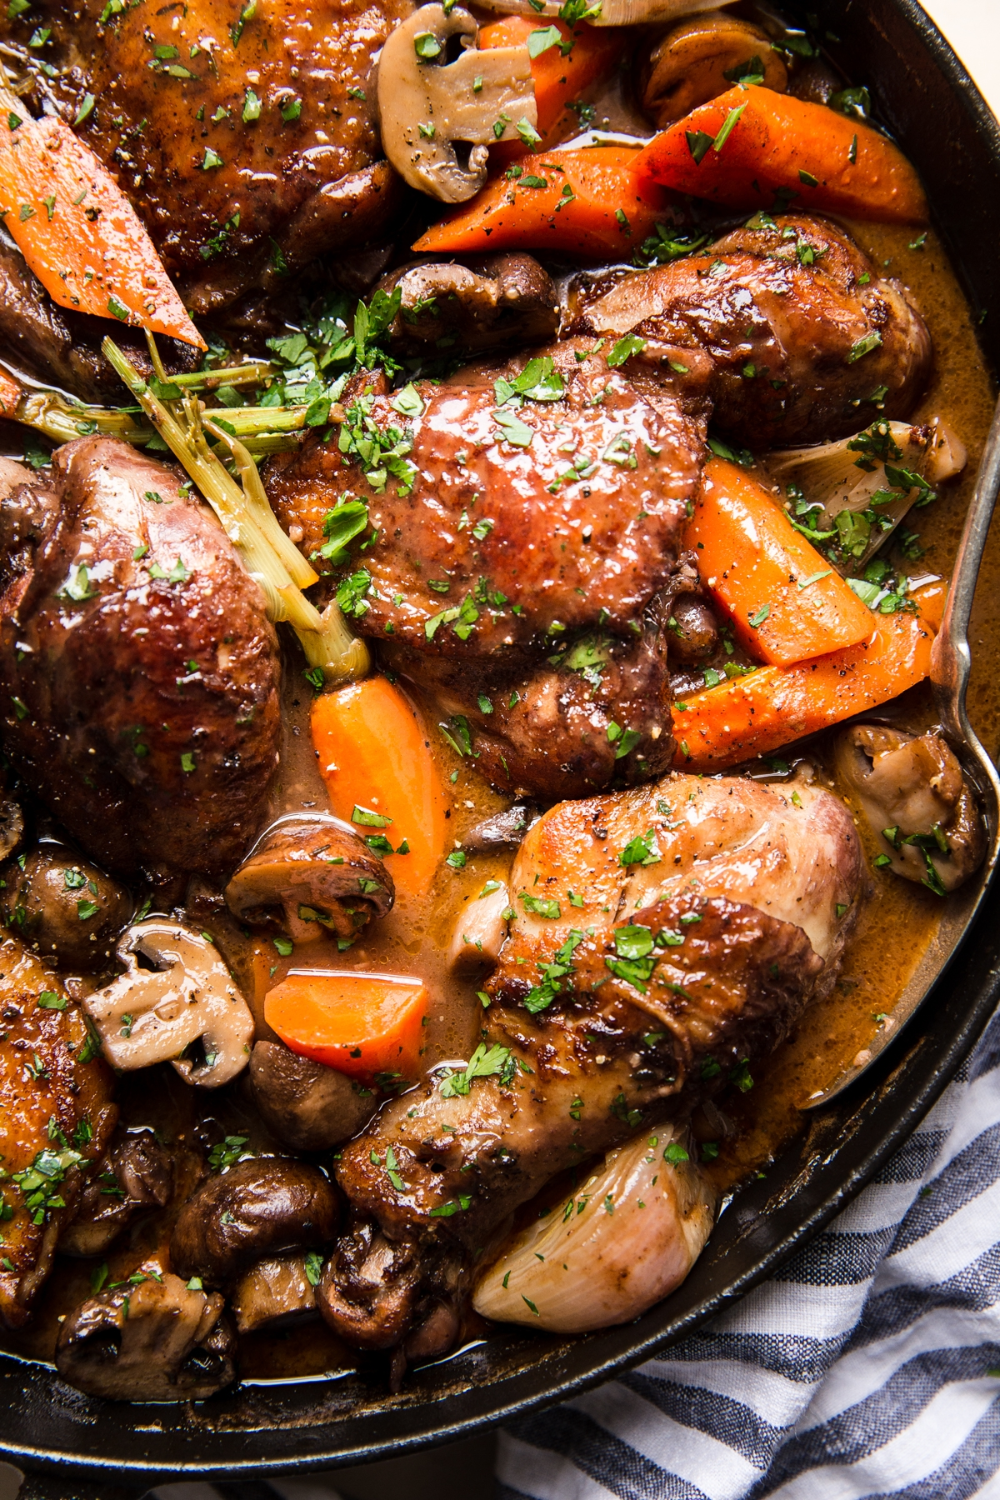 Easy Chicken Coq Au Vin Recipe The Modern Proper Recipe Fancy Dinner Recipes Coq Au Vin Dinner Party Recipes